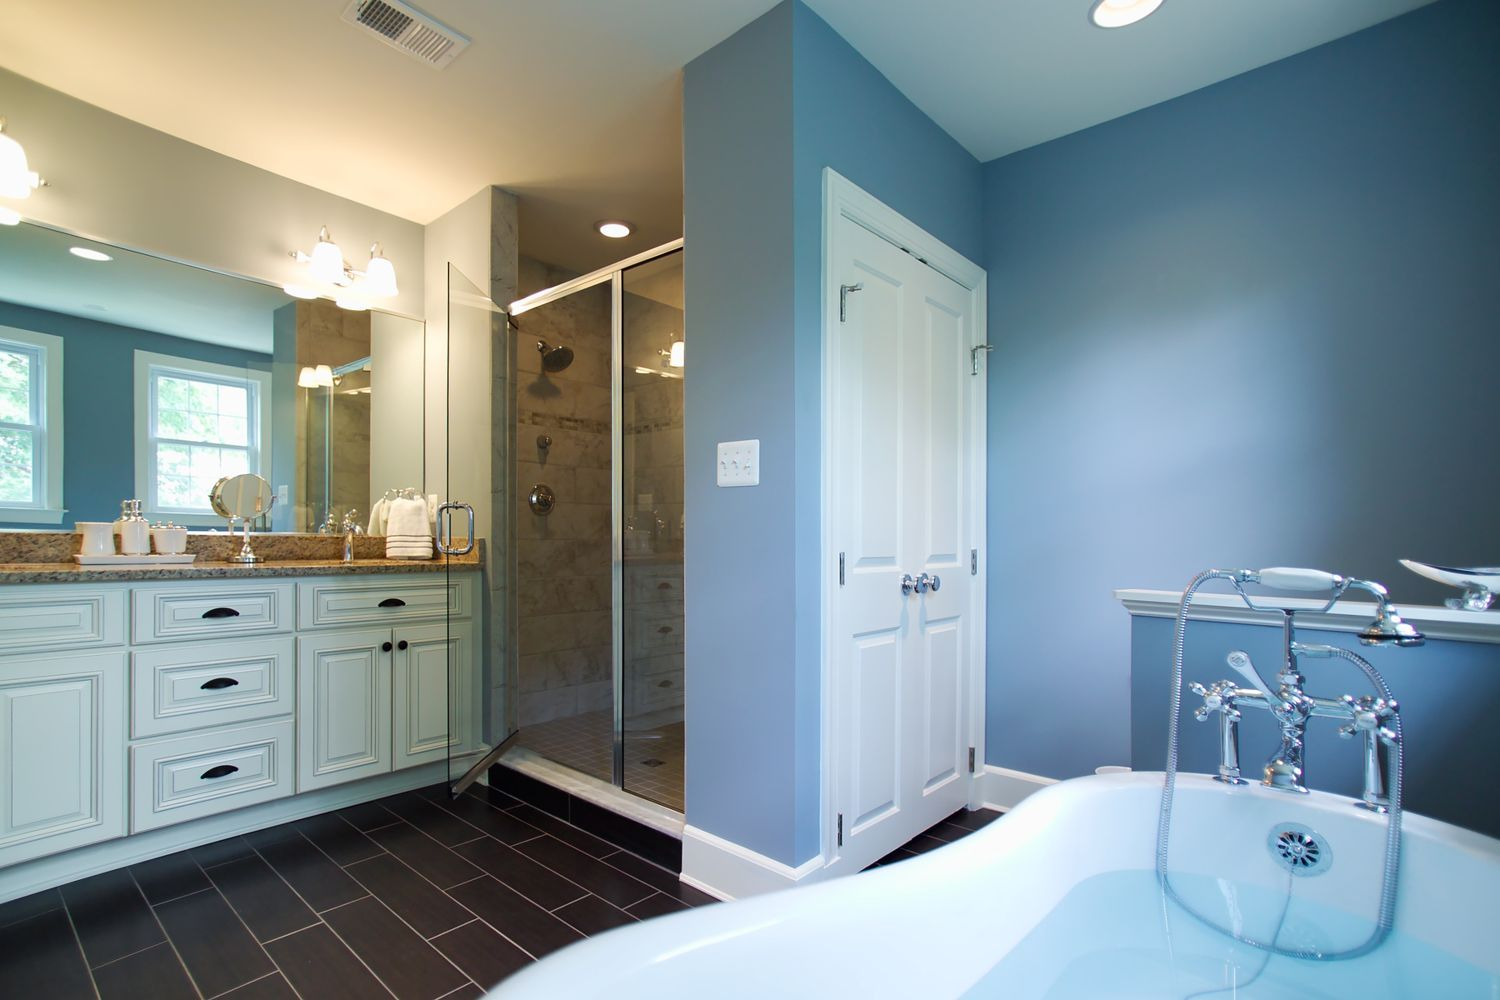 Another Bathroom to Share | Posts,<br/>, Home decor and Bathroom